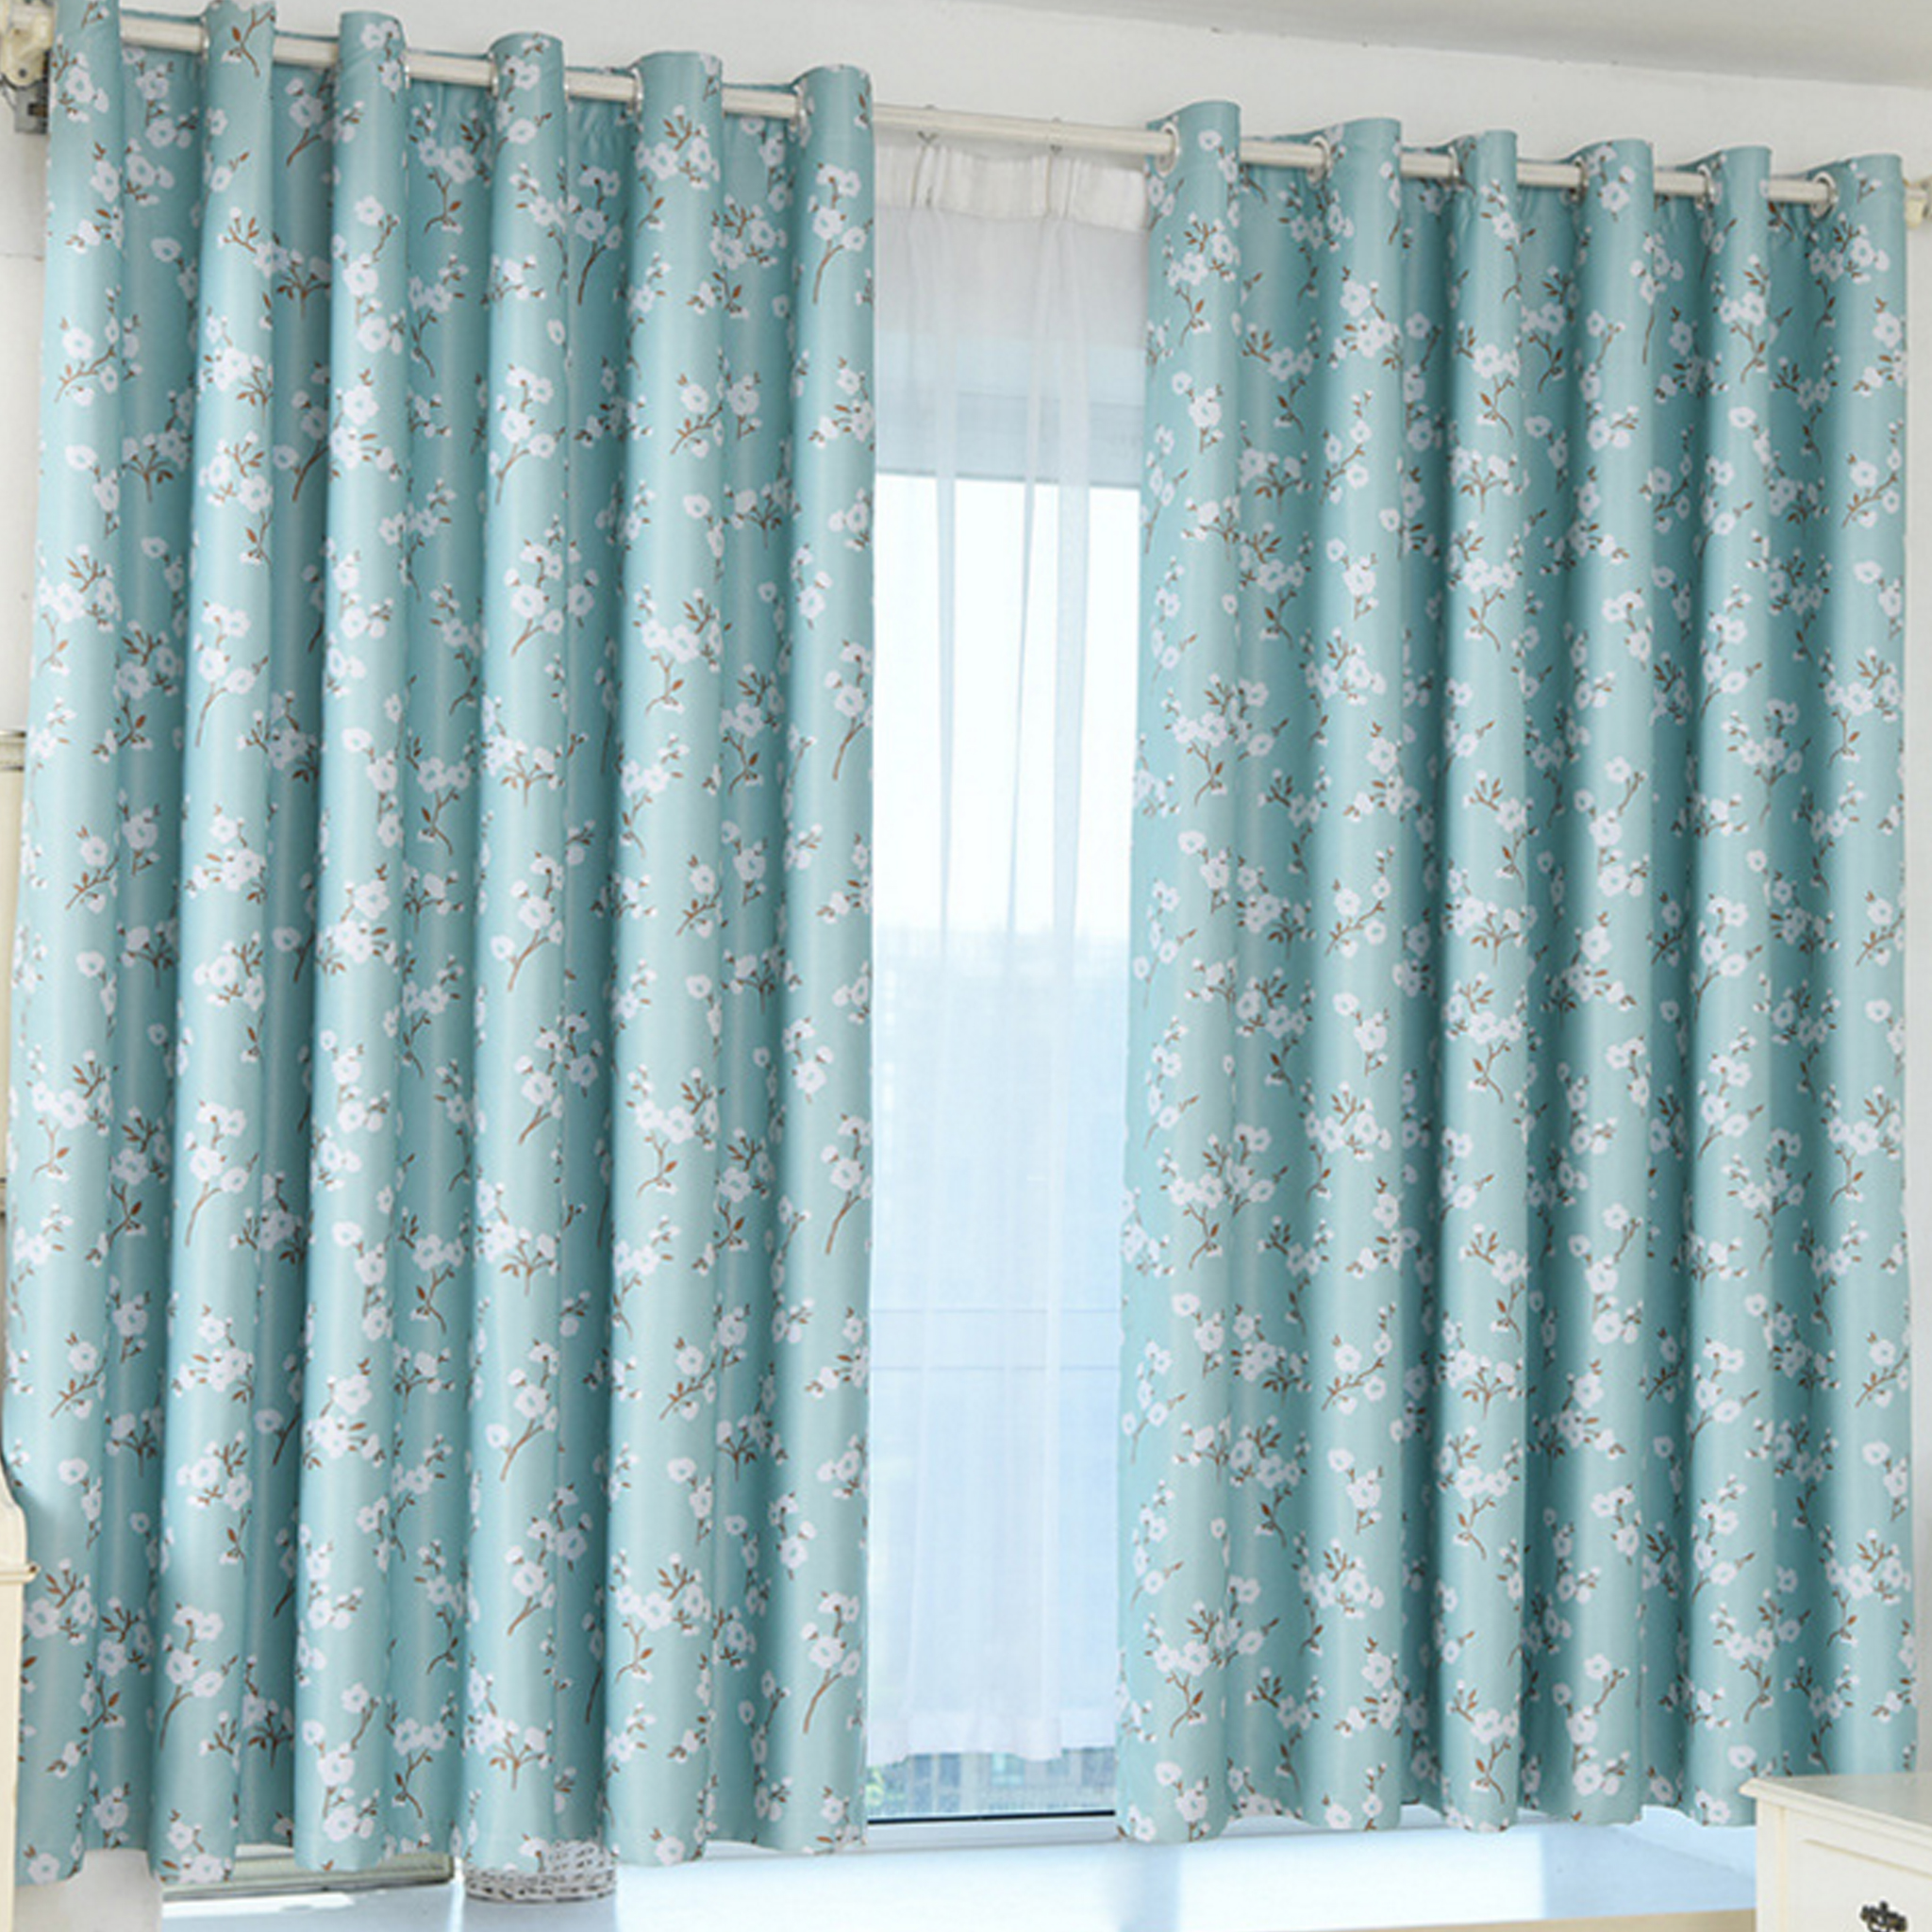 down to quality blinds blind up roller blackout service cut navy furnished itm